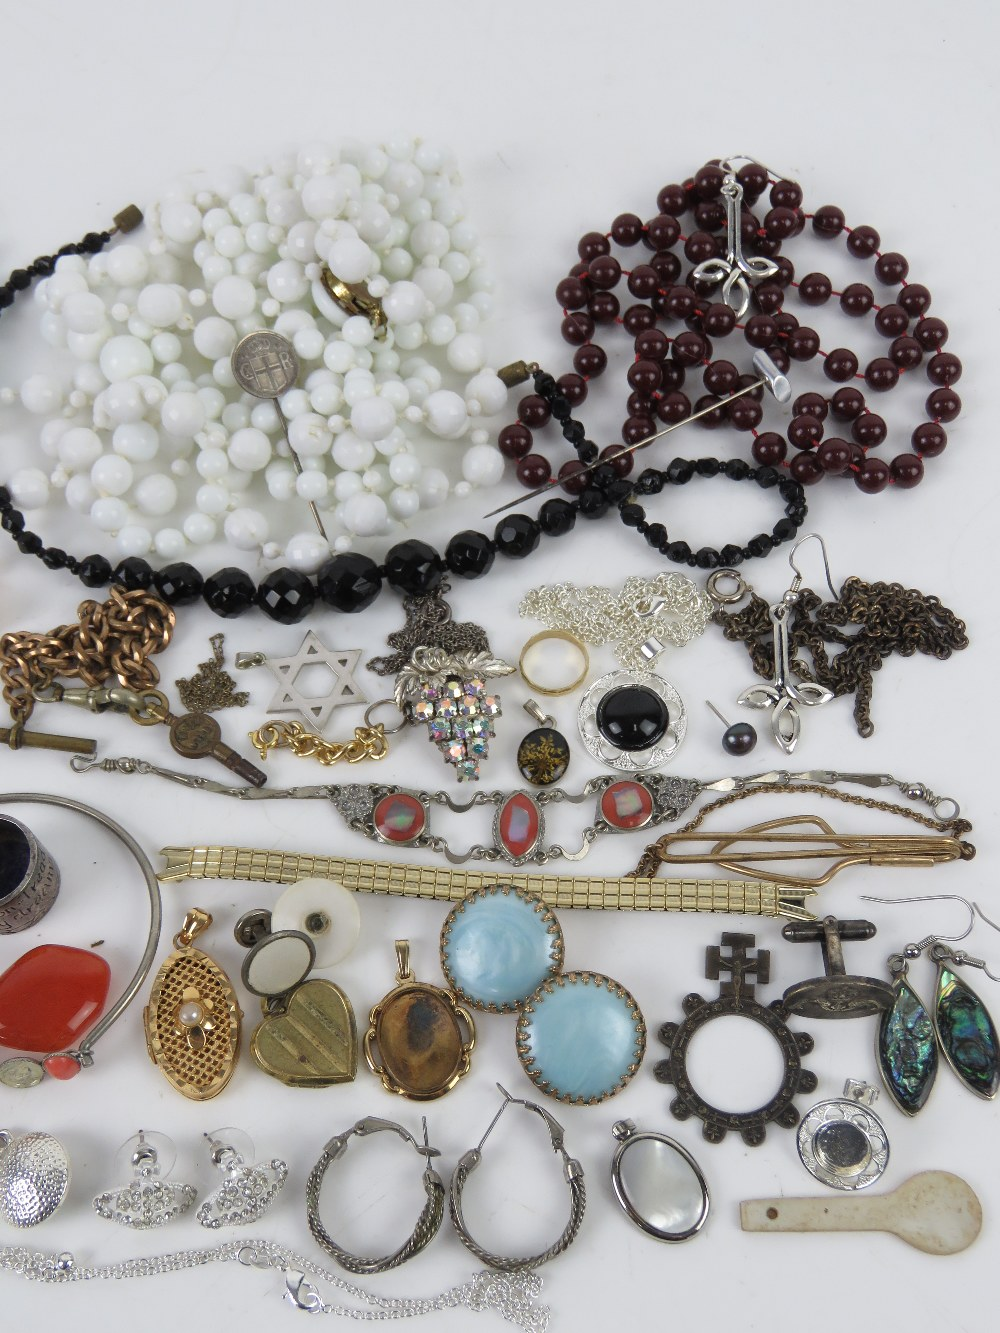 A quantity of assorted jewellery including silver signet ring, silver heart padlock clasp, - Image 3 of 3